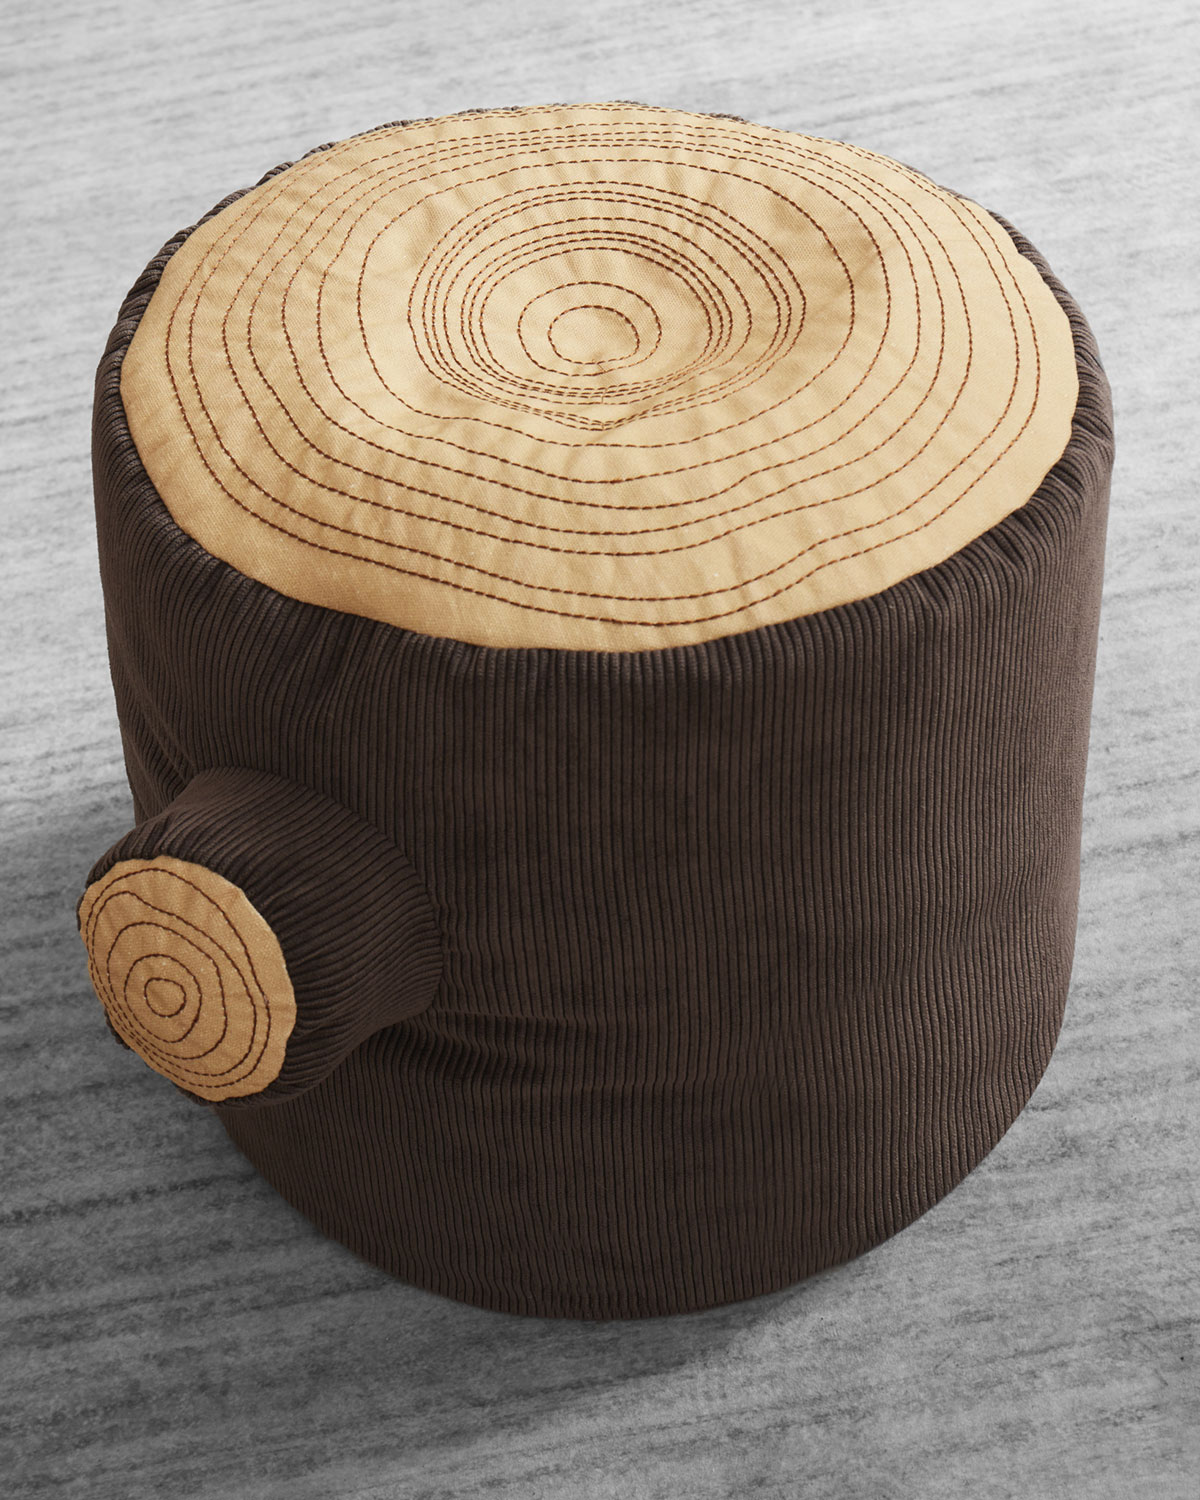 ASWEETS Tree Stump Pouf